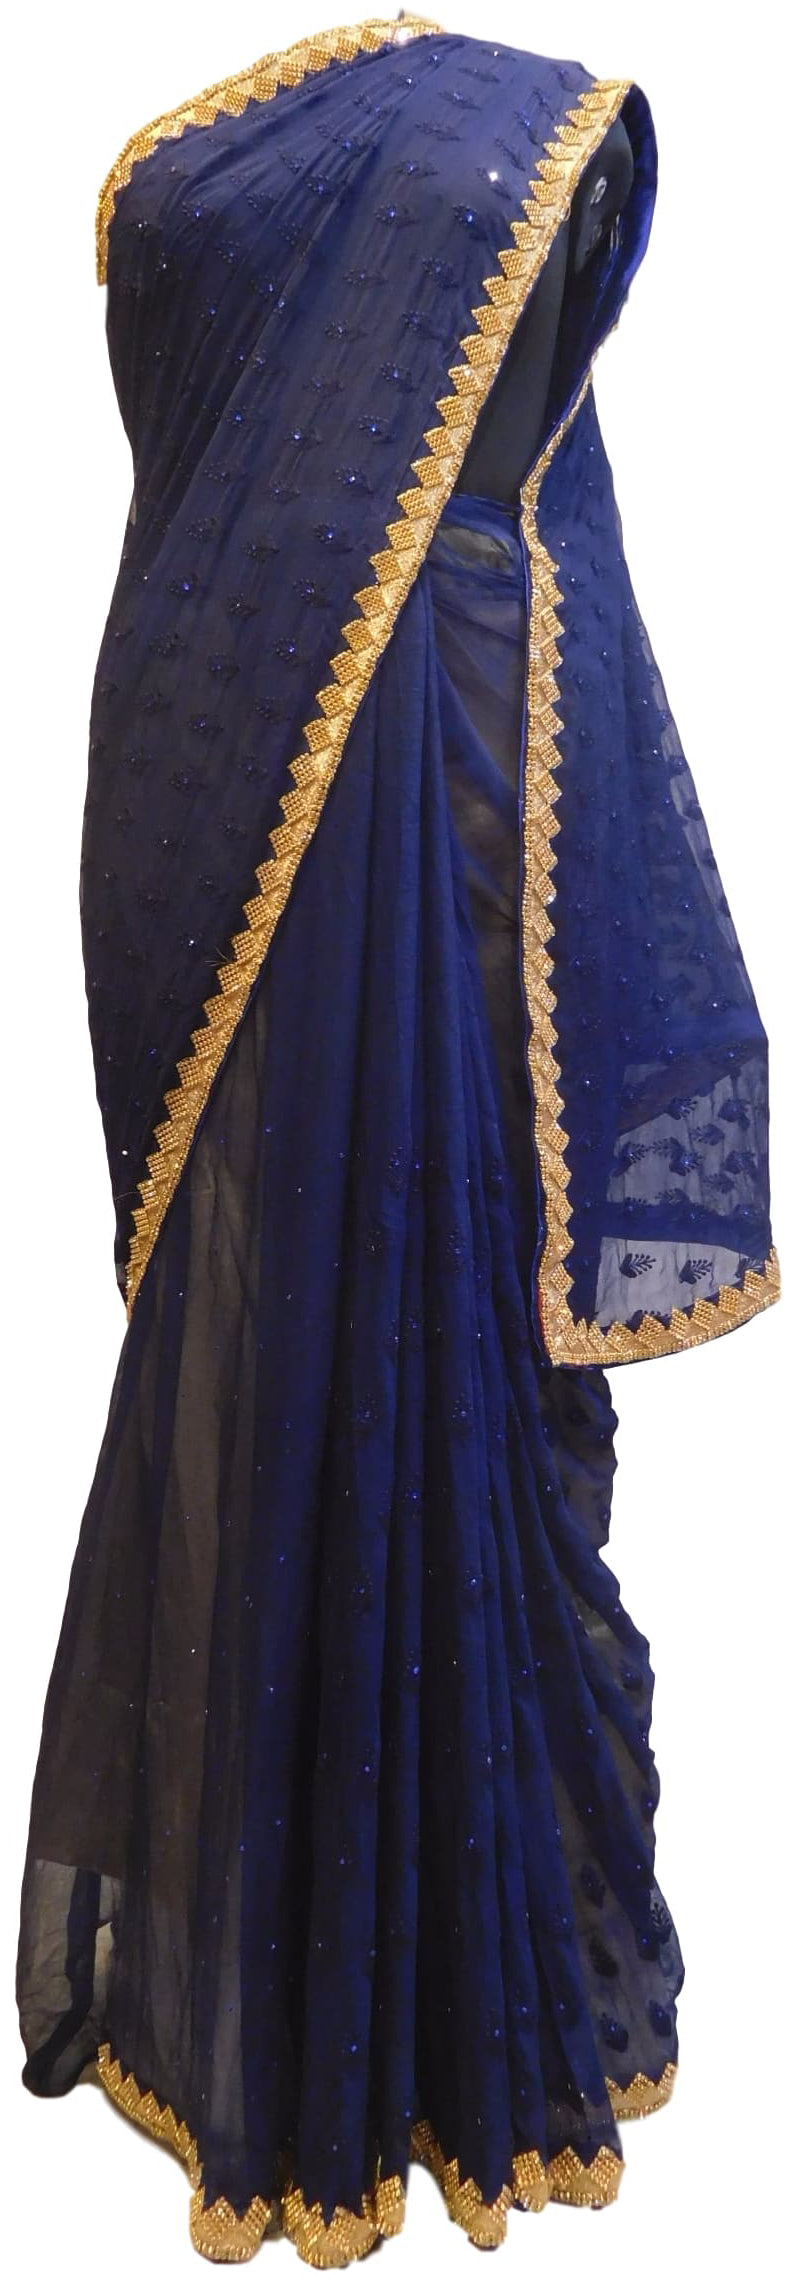 Blue Designer Pure Chiffon Hand Embroidery Thread Stone Work Saree Sari